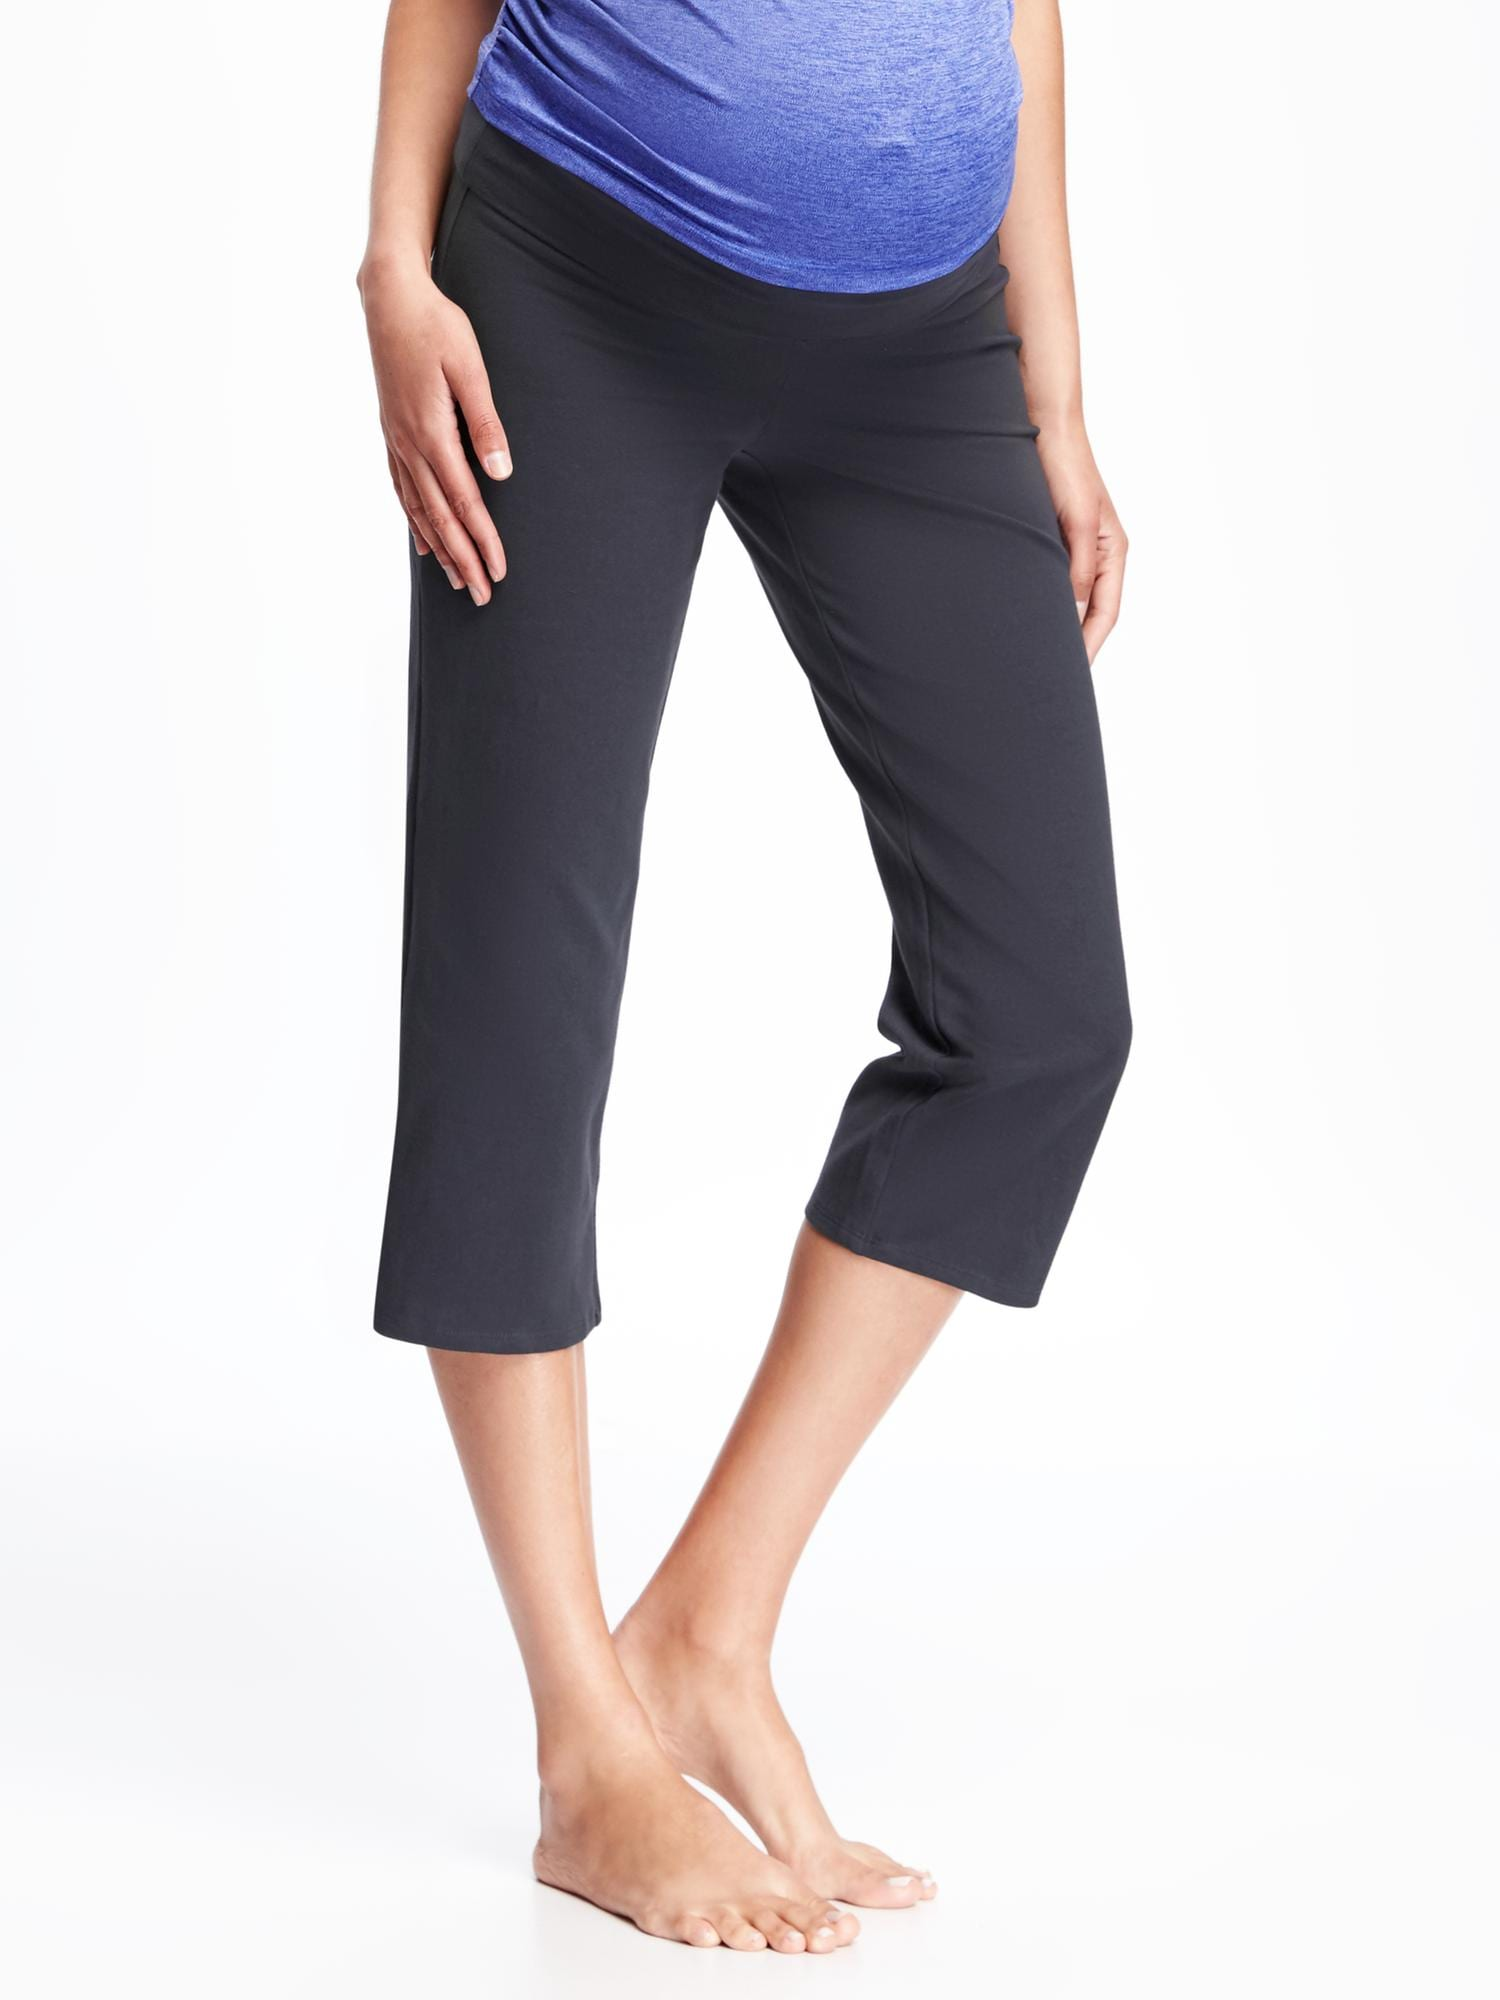 a6652eaafdb10 Maternity Roll-Panel Yoga Capris | Old Navy